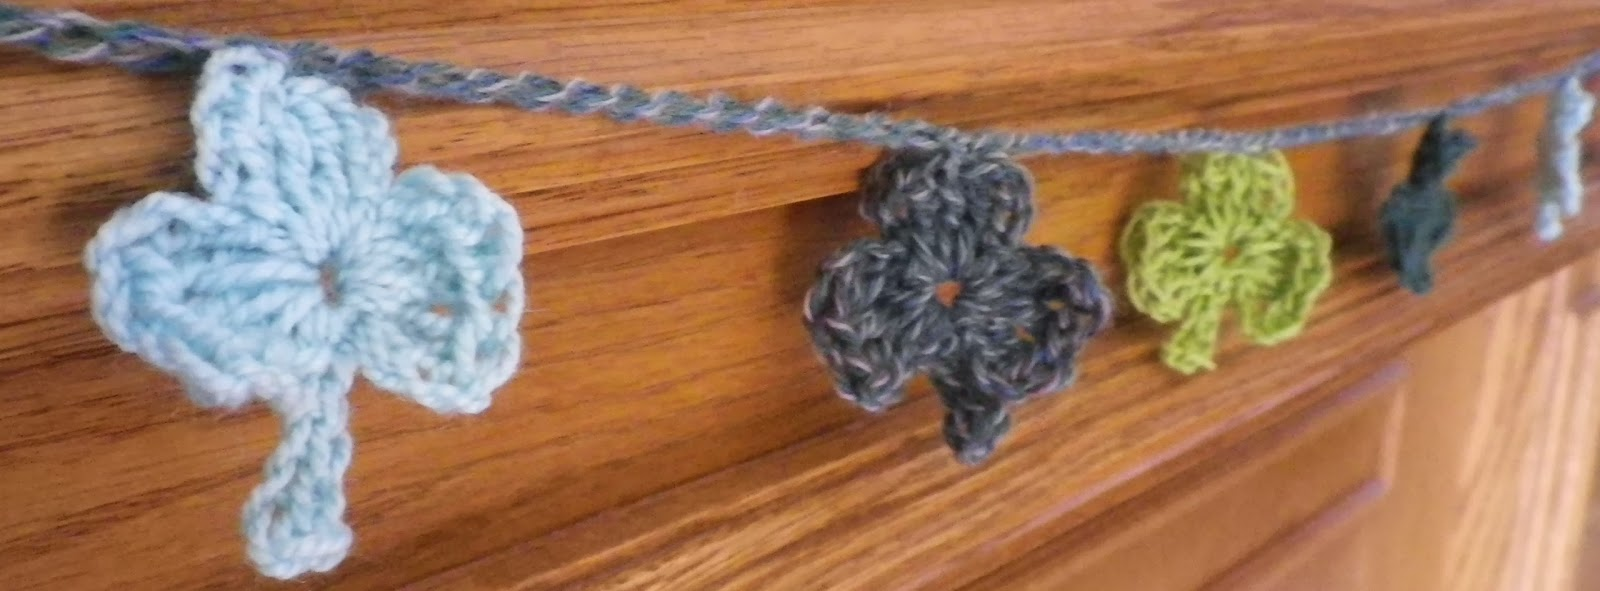 Crocheted Shamrock Garland - by Feather of Crescent Moon Collective